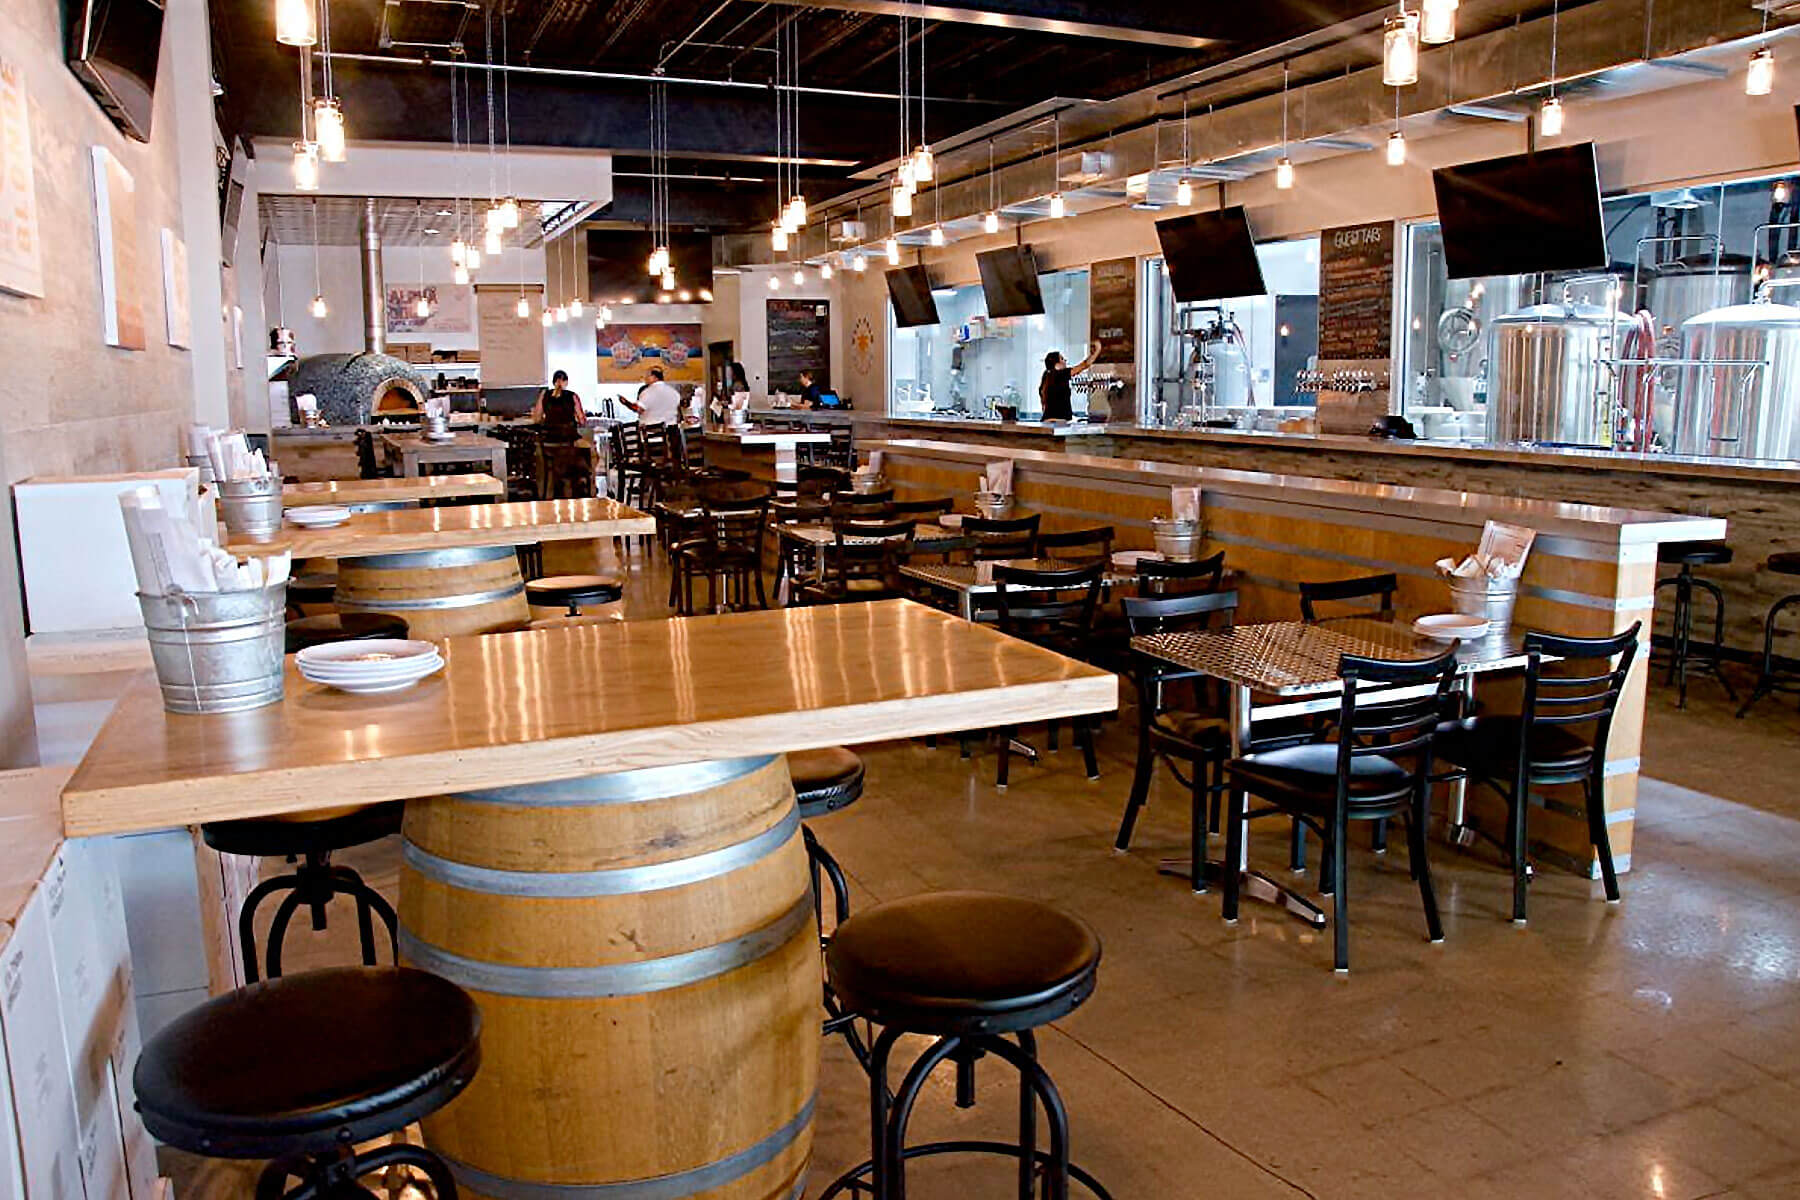 Inside the taproom of West Palm Brewery in downtown West Palm Beach, Florida